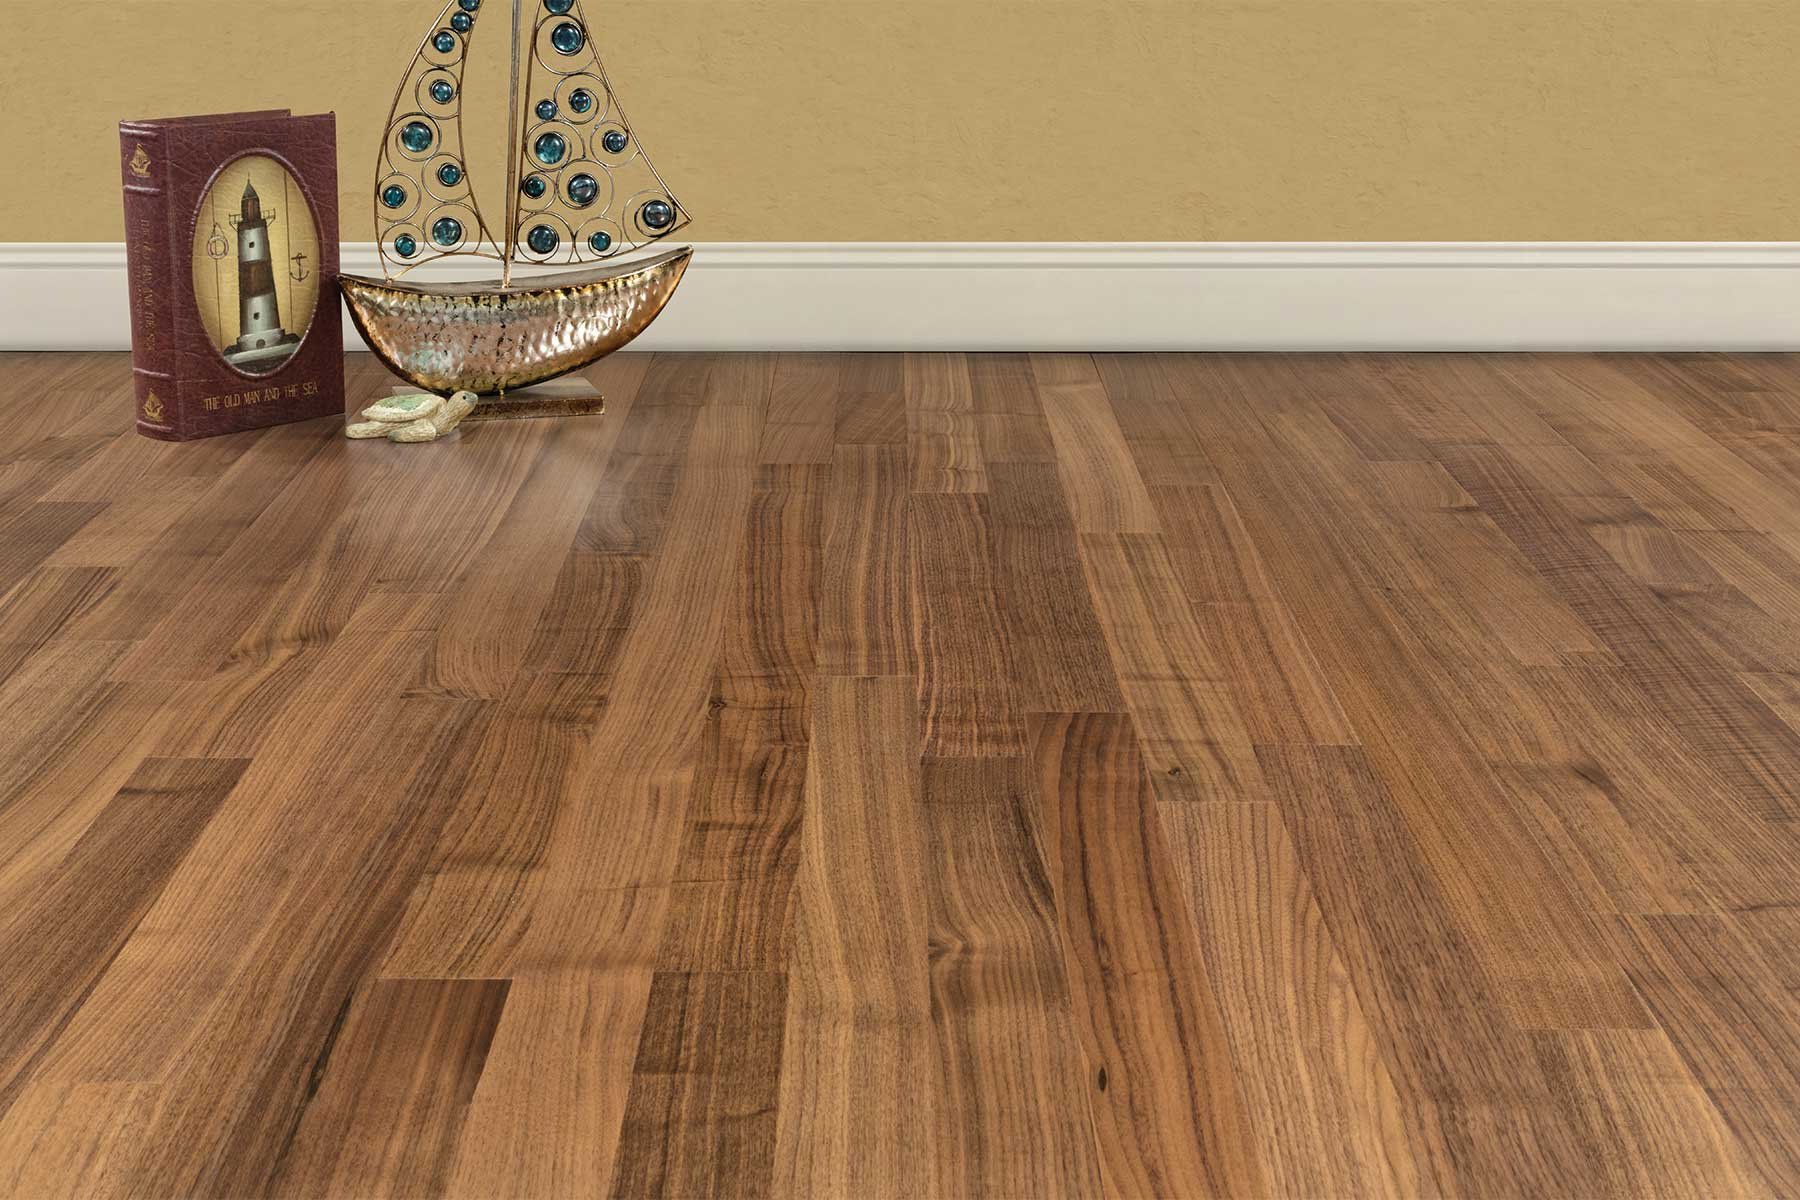 Walnut, American Black